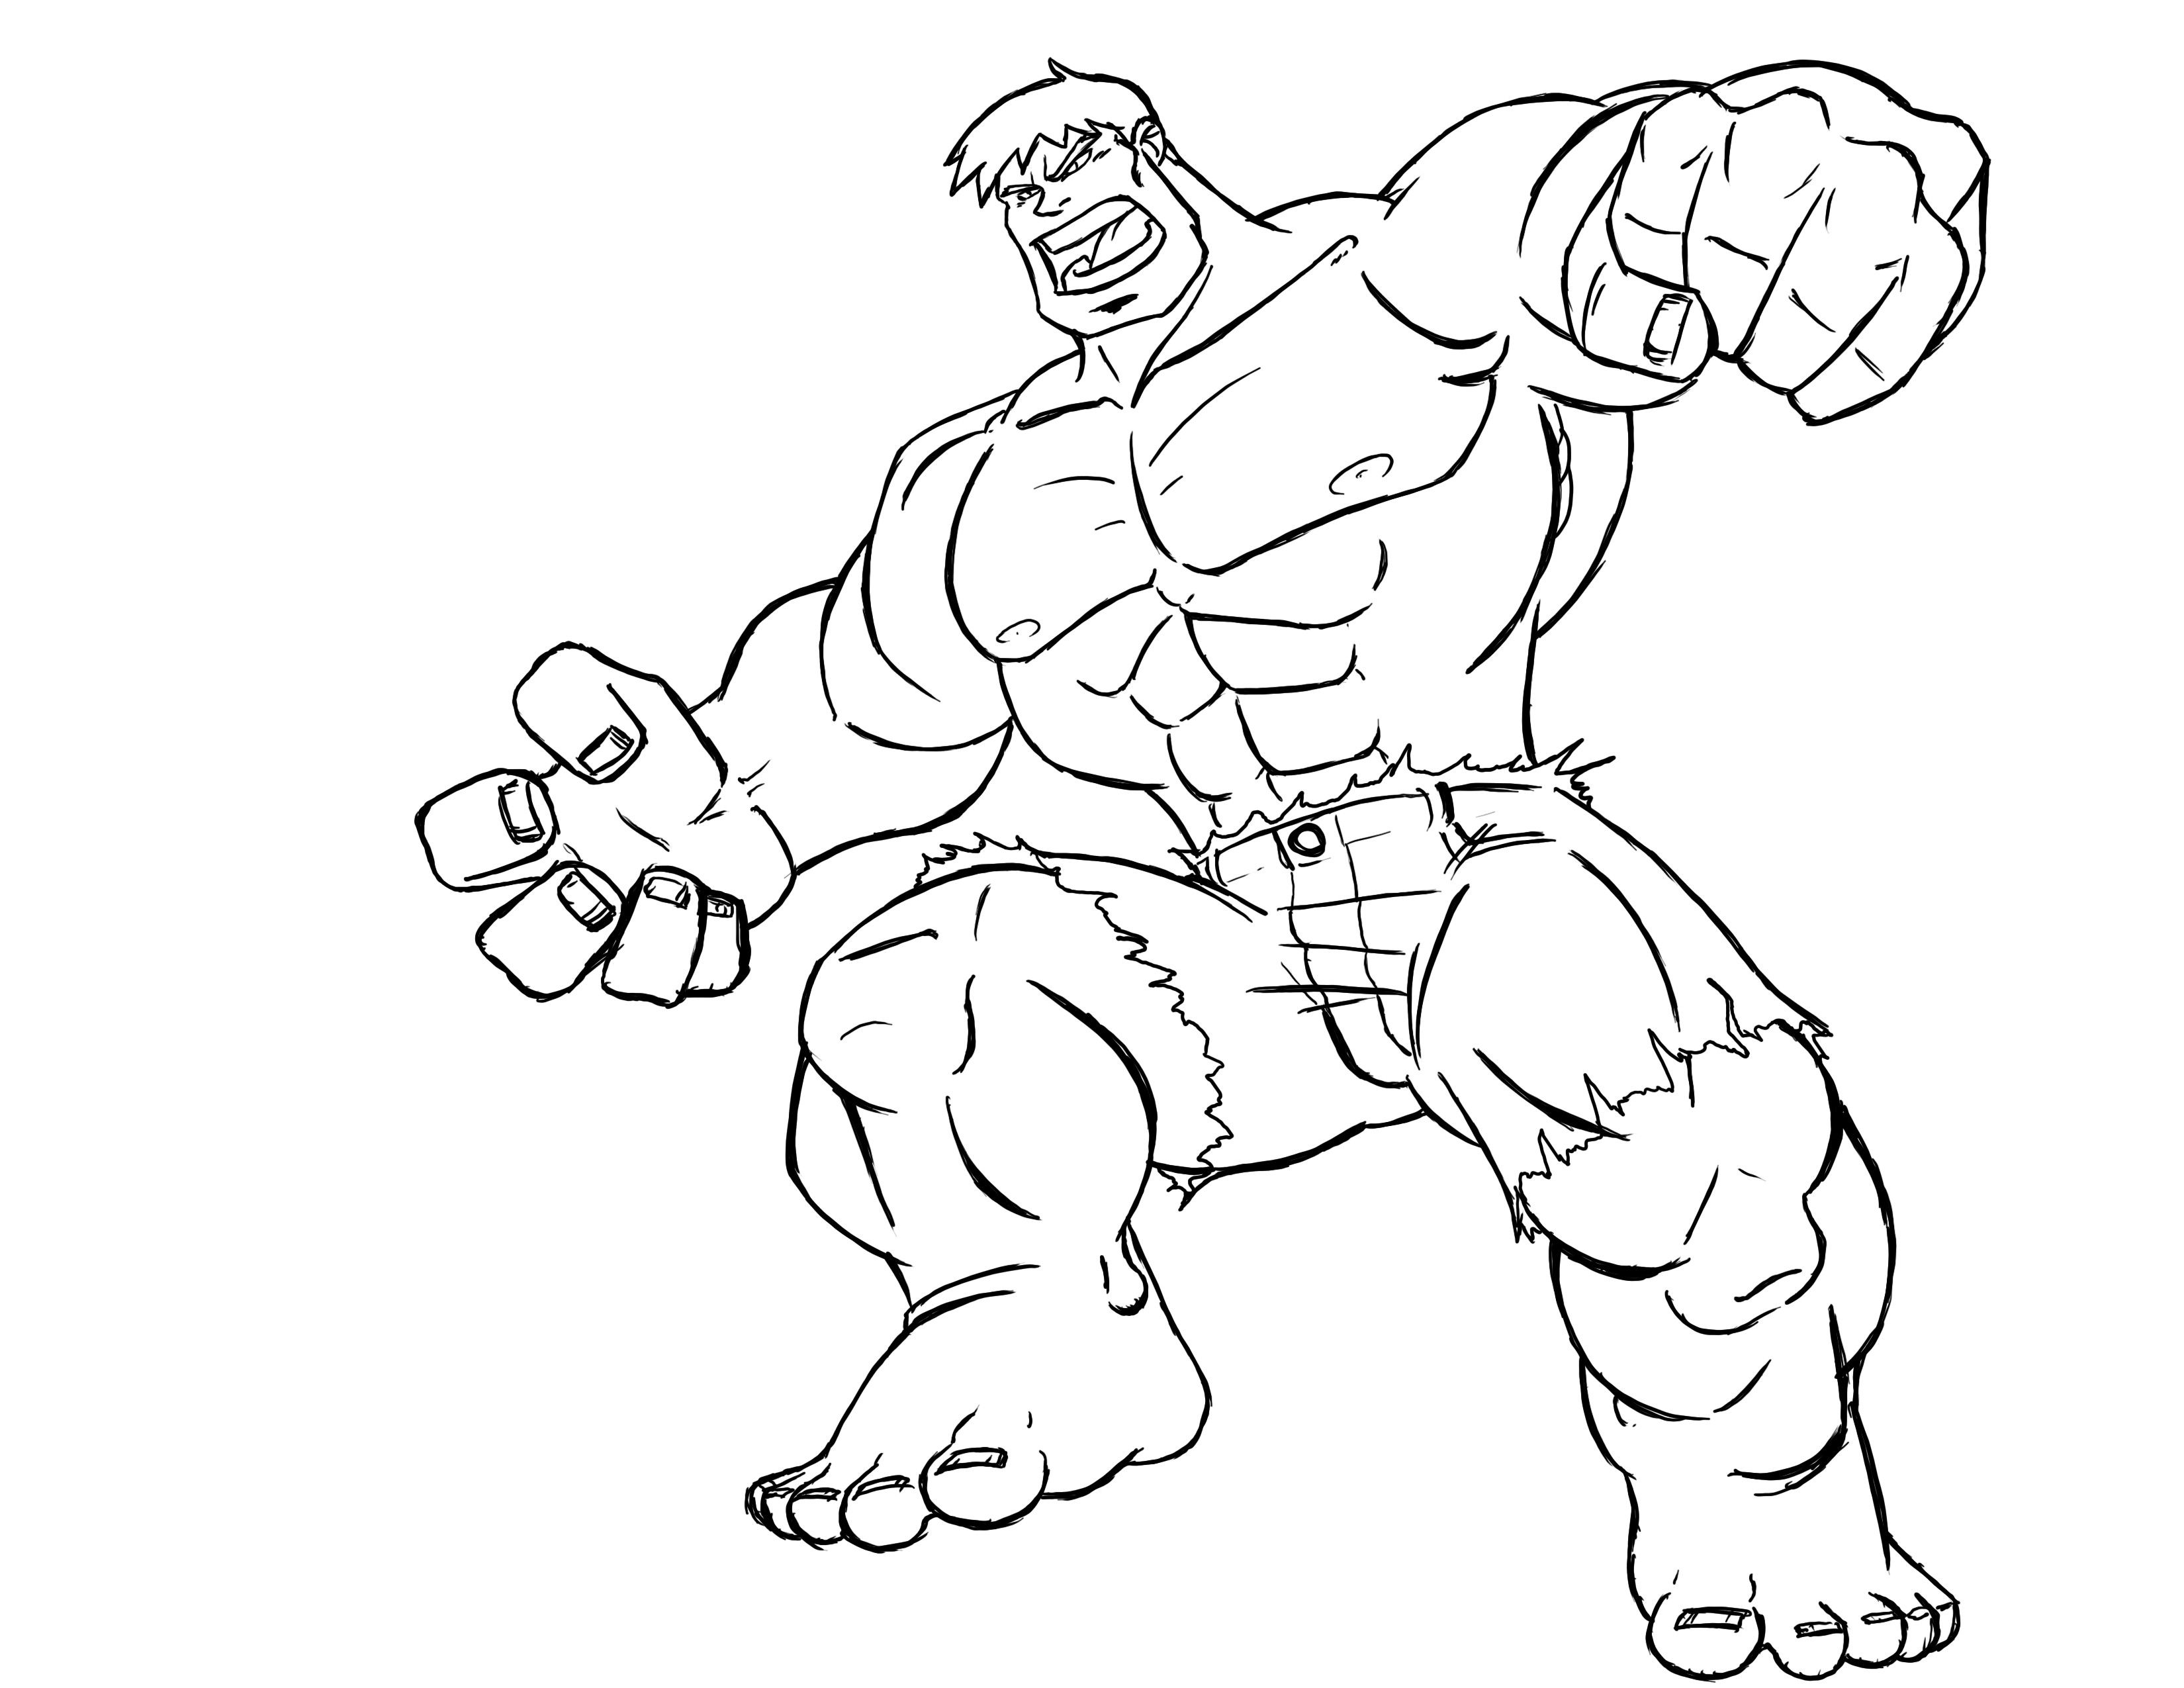 Super Hero Coloring Page New Superhero Coloring Pages Hulk Coloring Pages Patinsudouest Superhero Coloring Pages Hulk Coloring Pages Avengers Coloring Pages